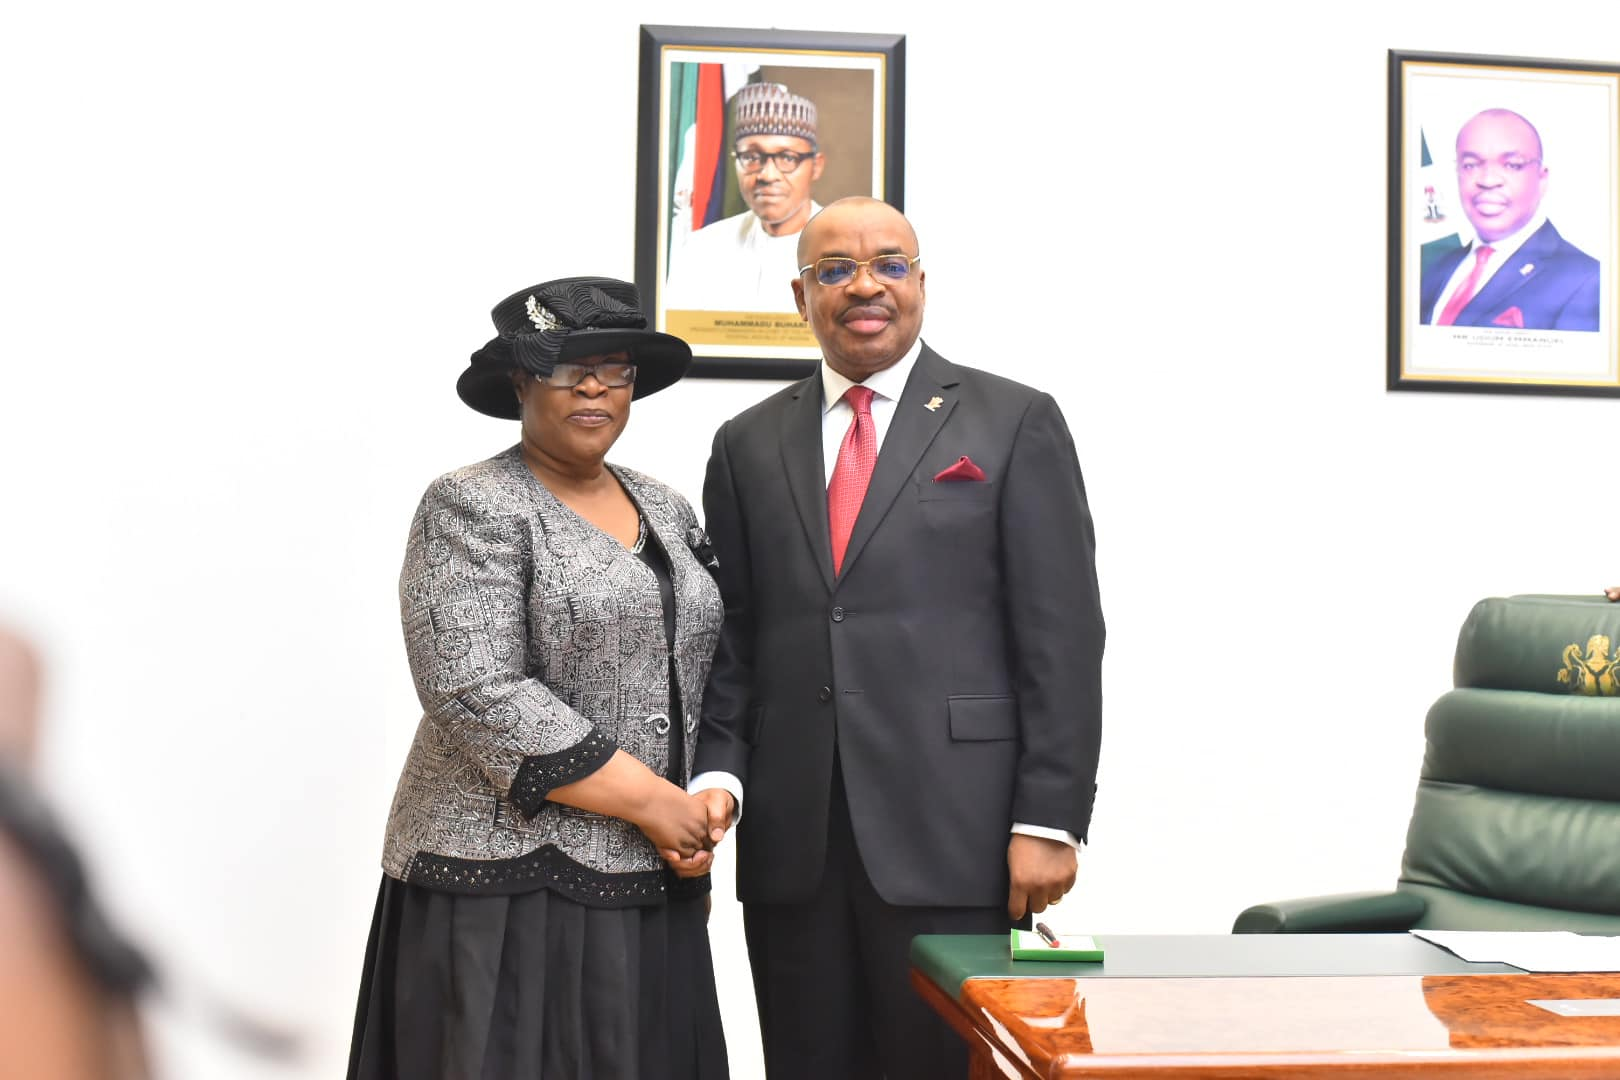 Governor Emmanuel swears in Justice Ekaette Obot as acting Chief Judge